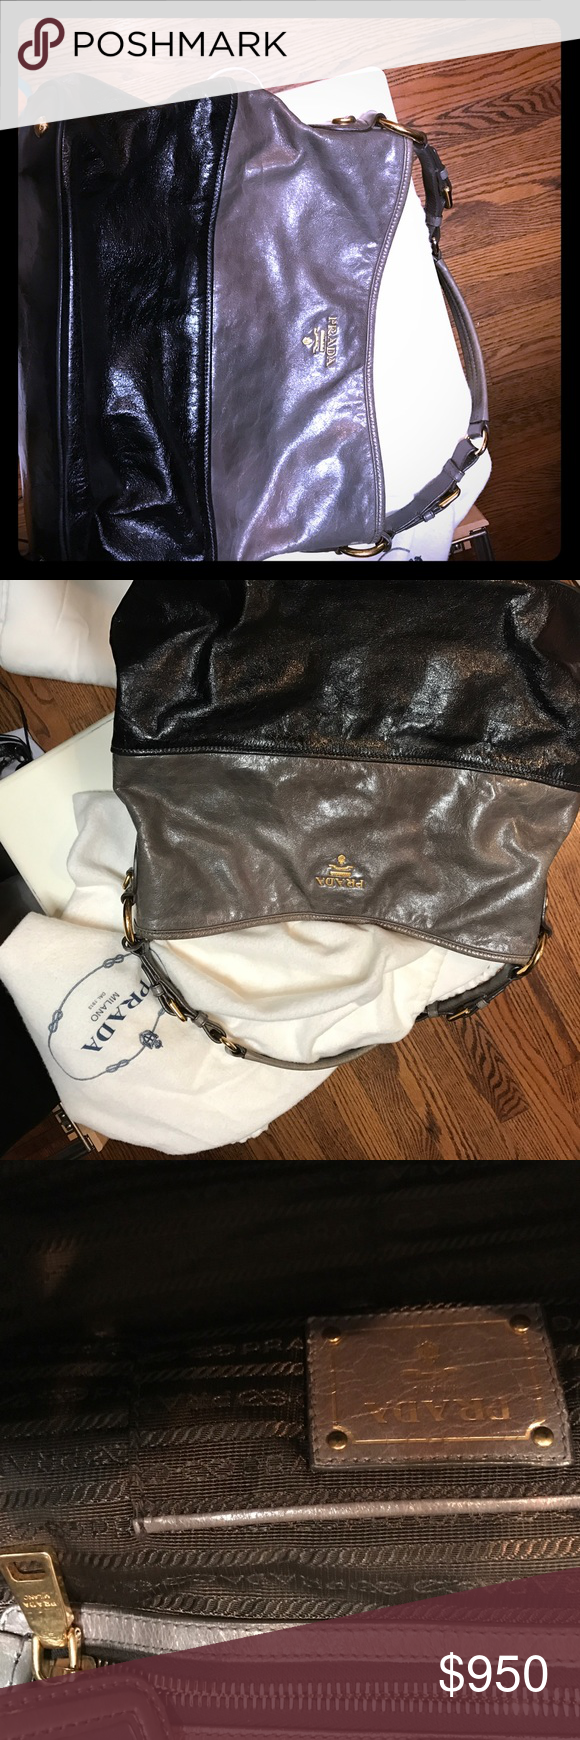 Authentic Prada  large shoulder bag Authentic Prada large shoulder bag. 2 color European edition. Black and grey soft leather. Gold hardware. Comes with  Dust bag and authenticity card. Excellent condition. Prada Bags Shoulder Bags